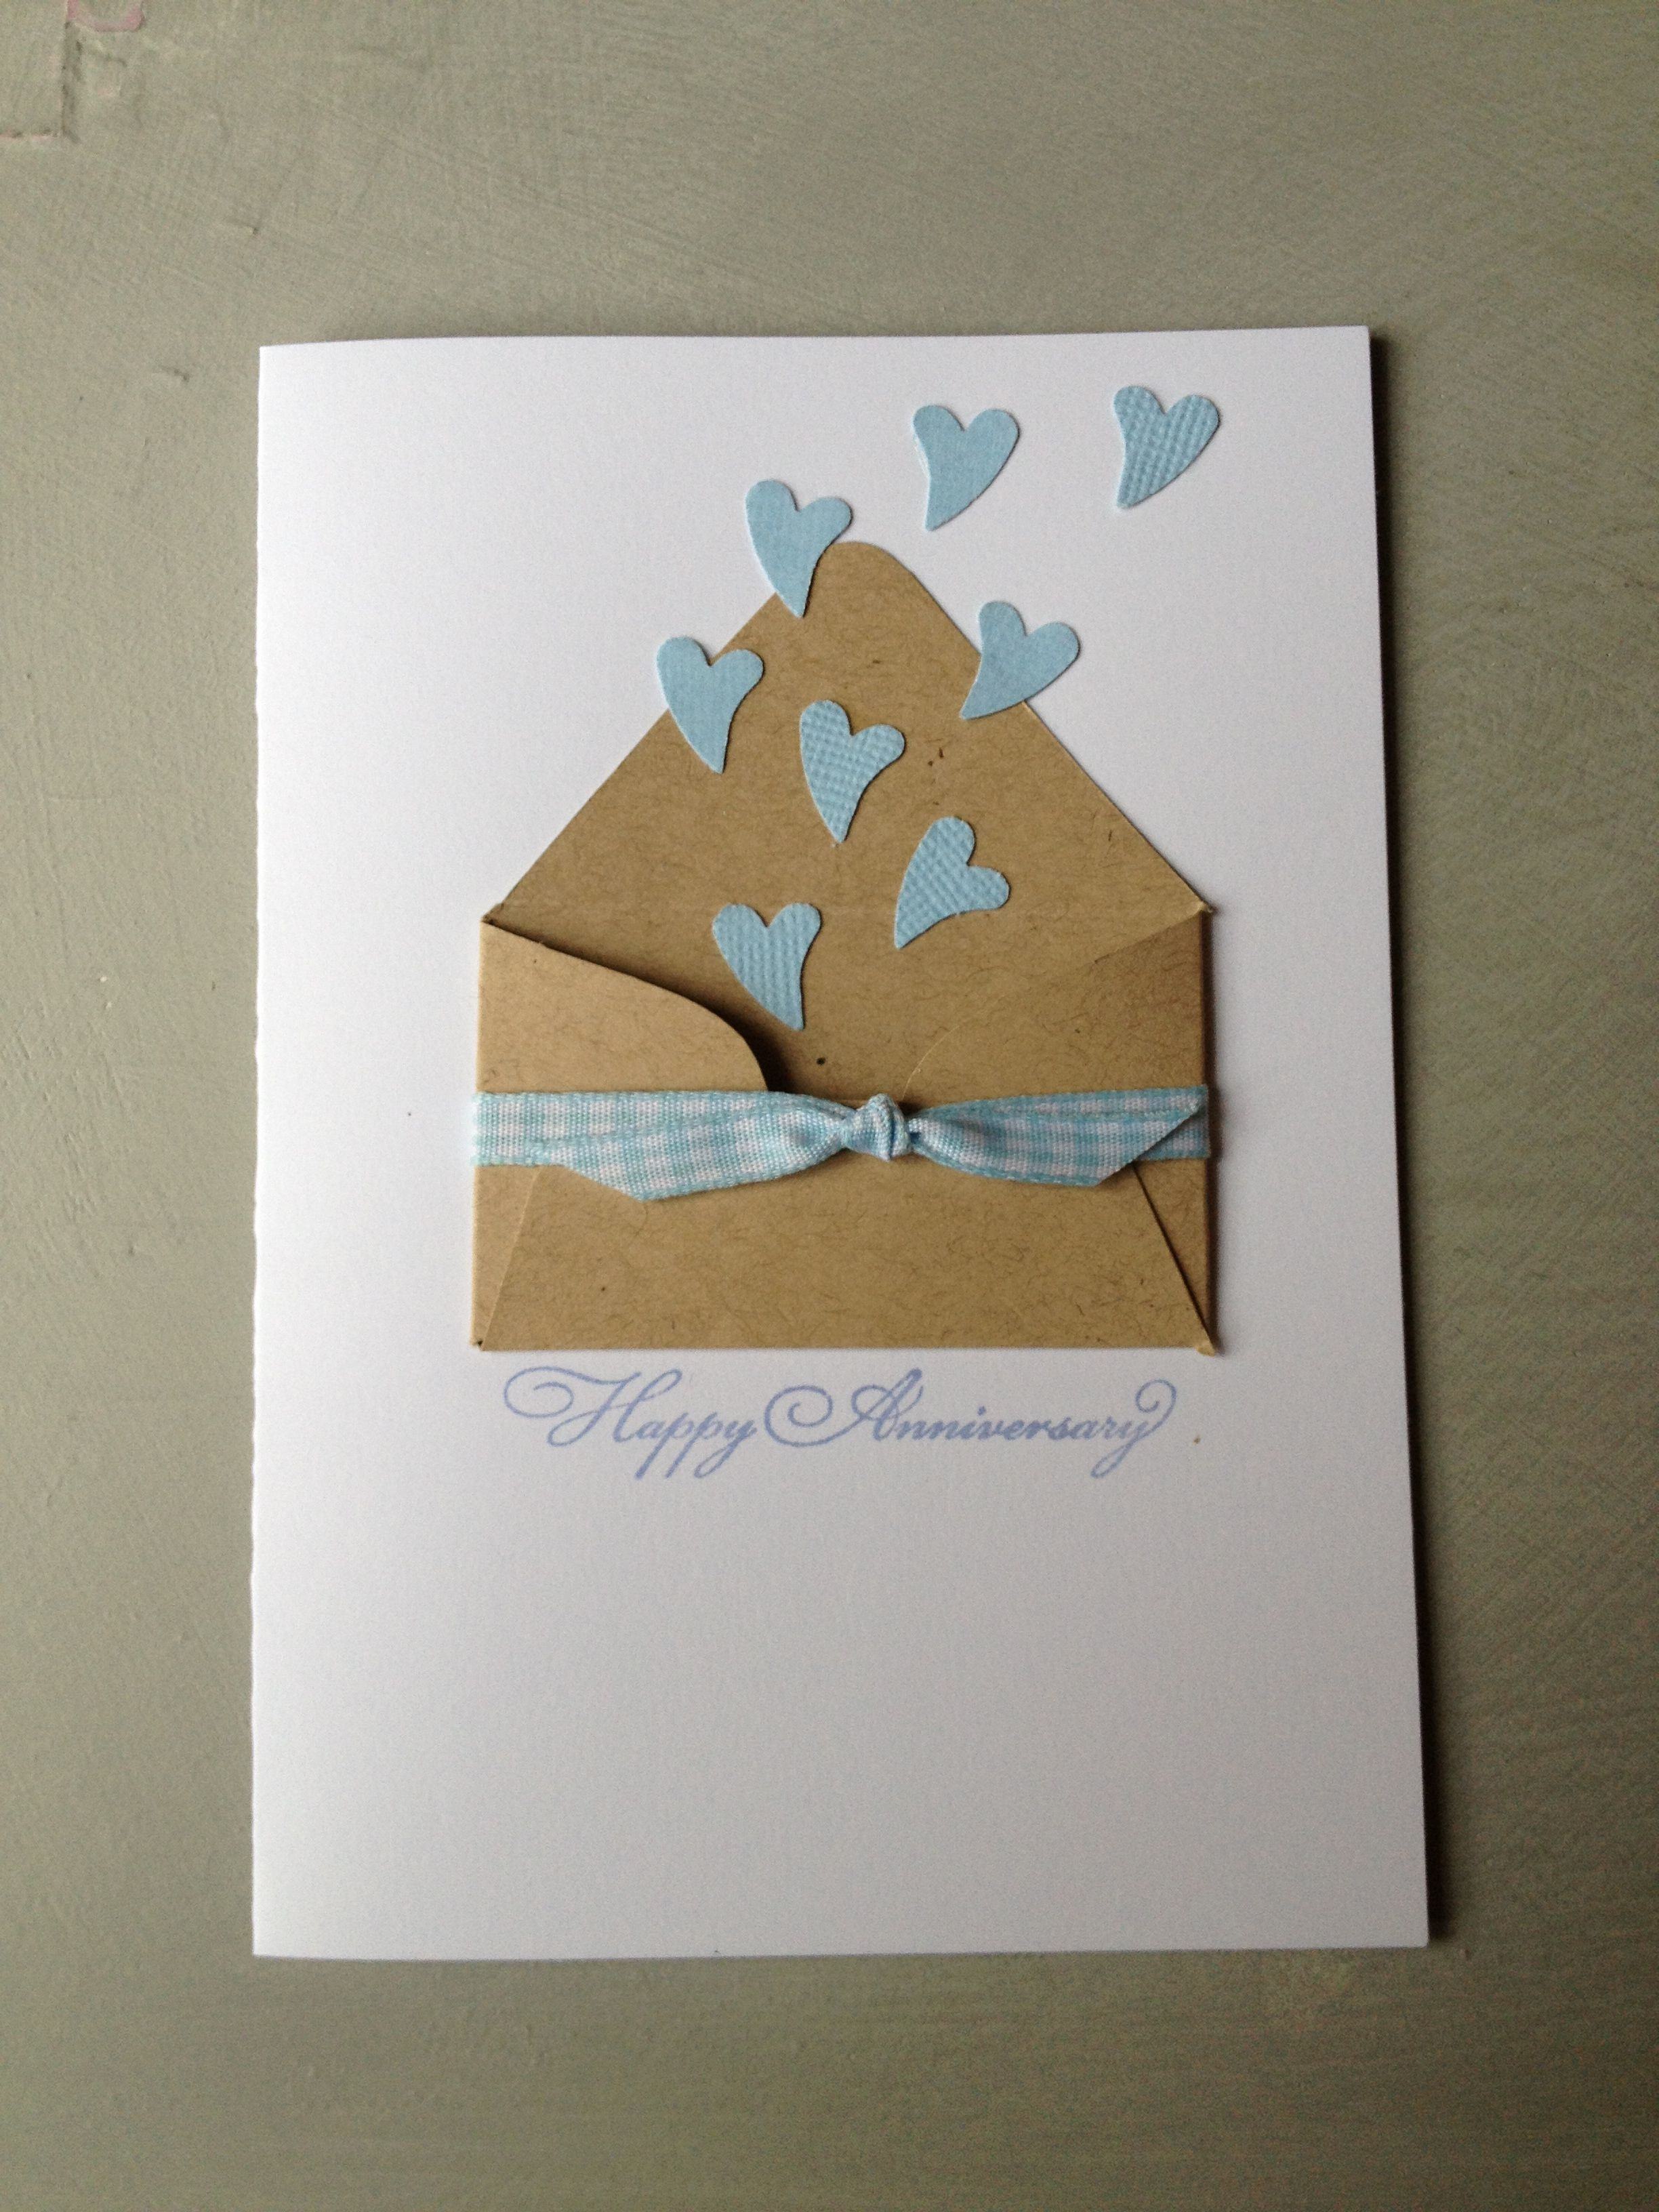 Wedding anniversary decoration ideas at home  Envelope card  replace hearts with balloons for a birthday card